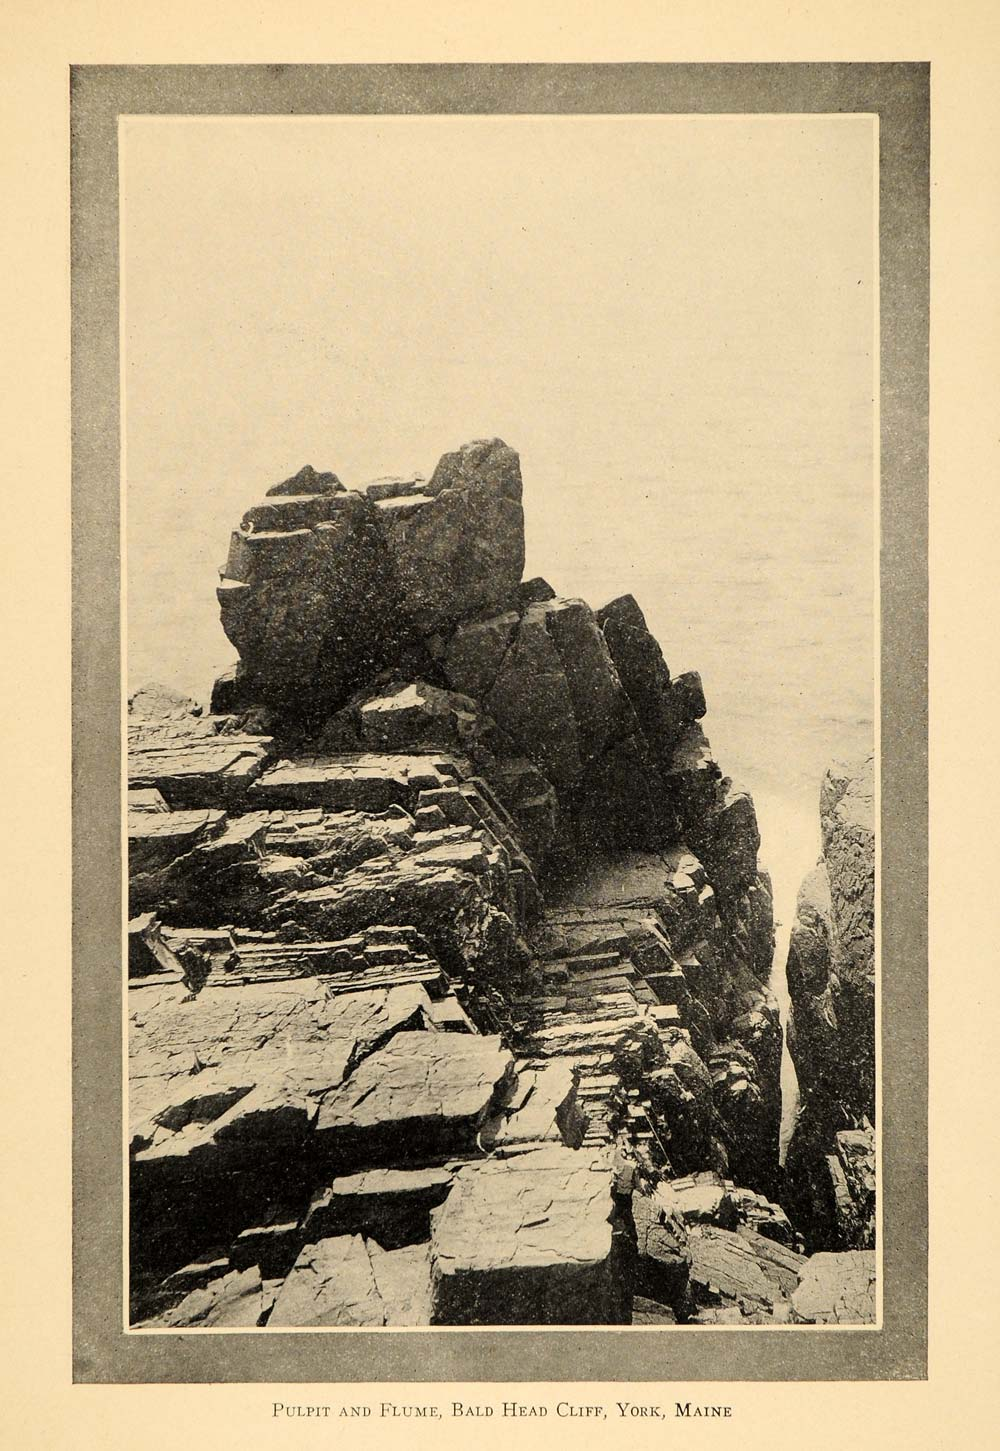 1911 Print Pulpit Flume Bald Head Cliff York Maine - ORIGINAL HISTORIC NEM1